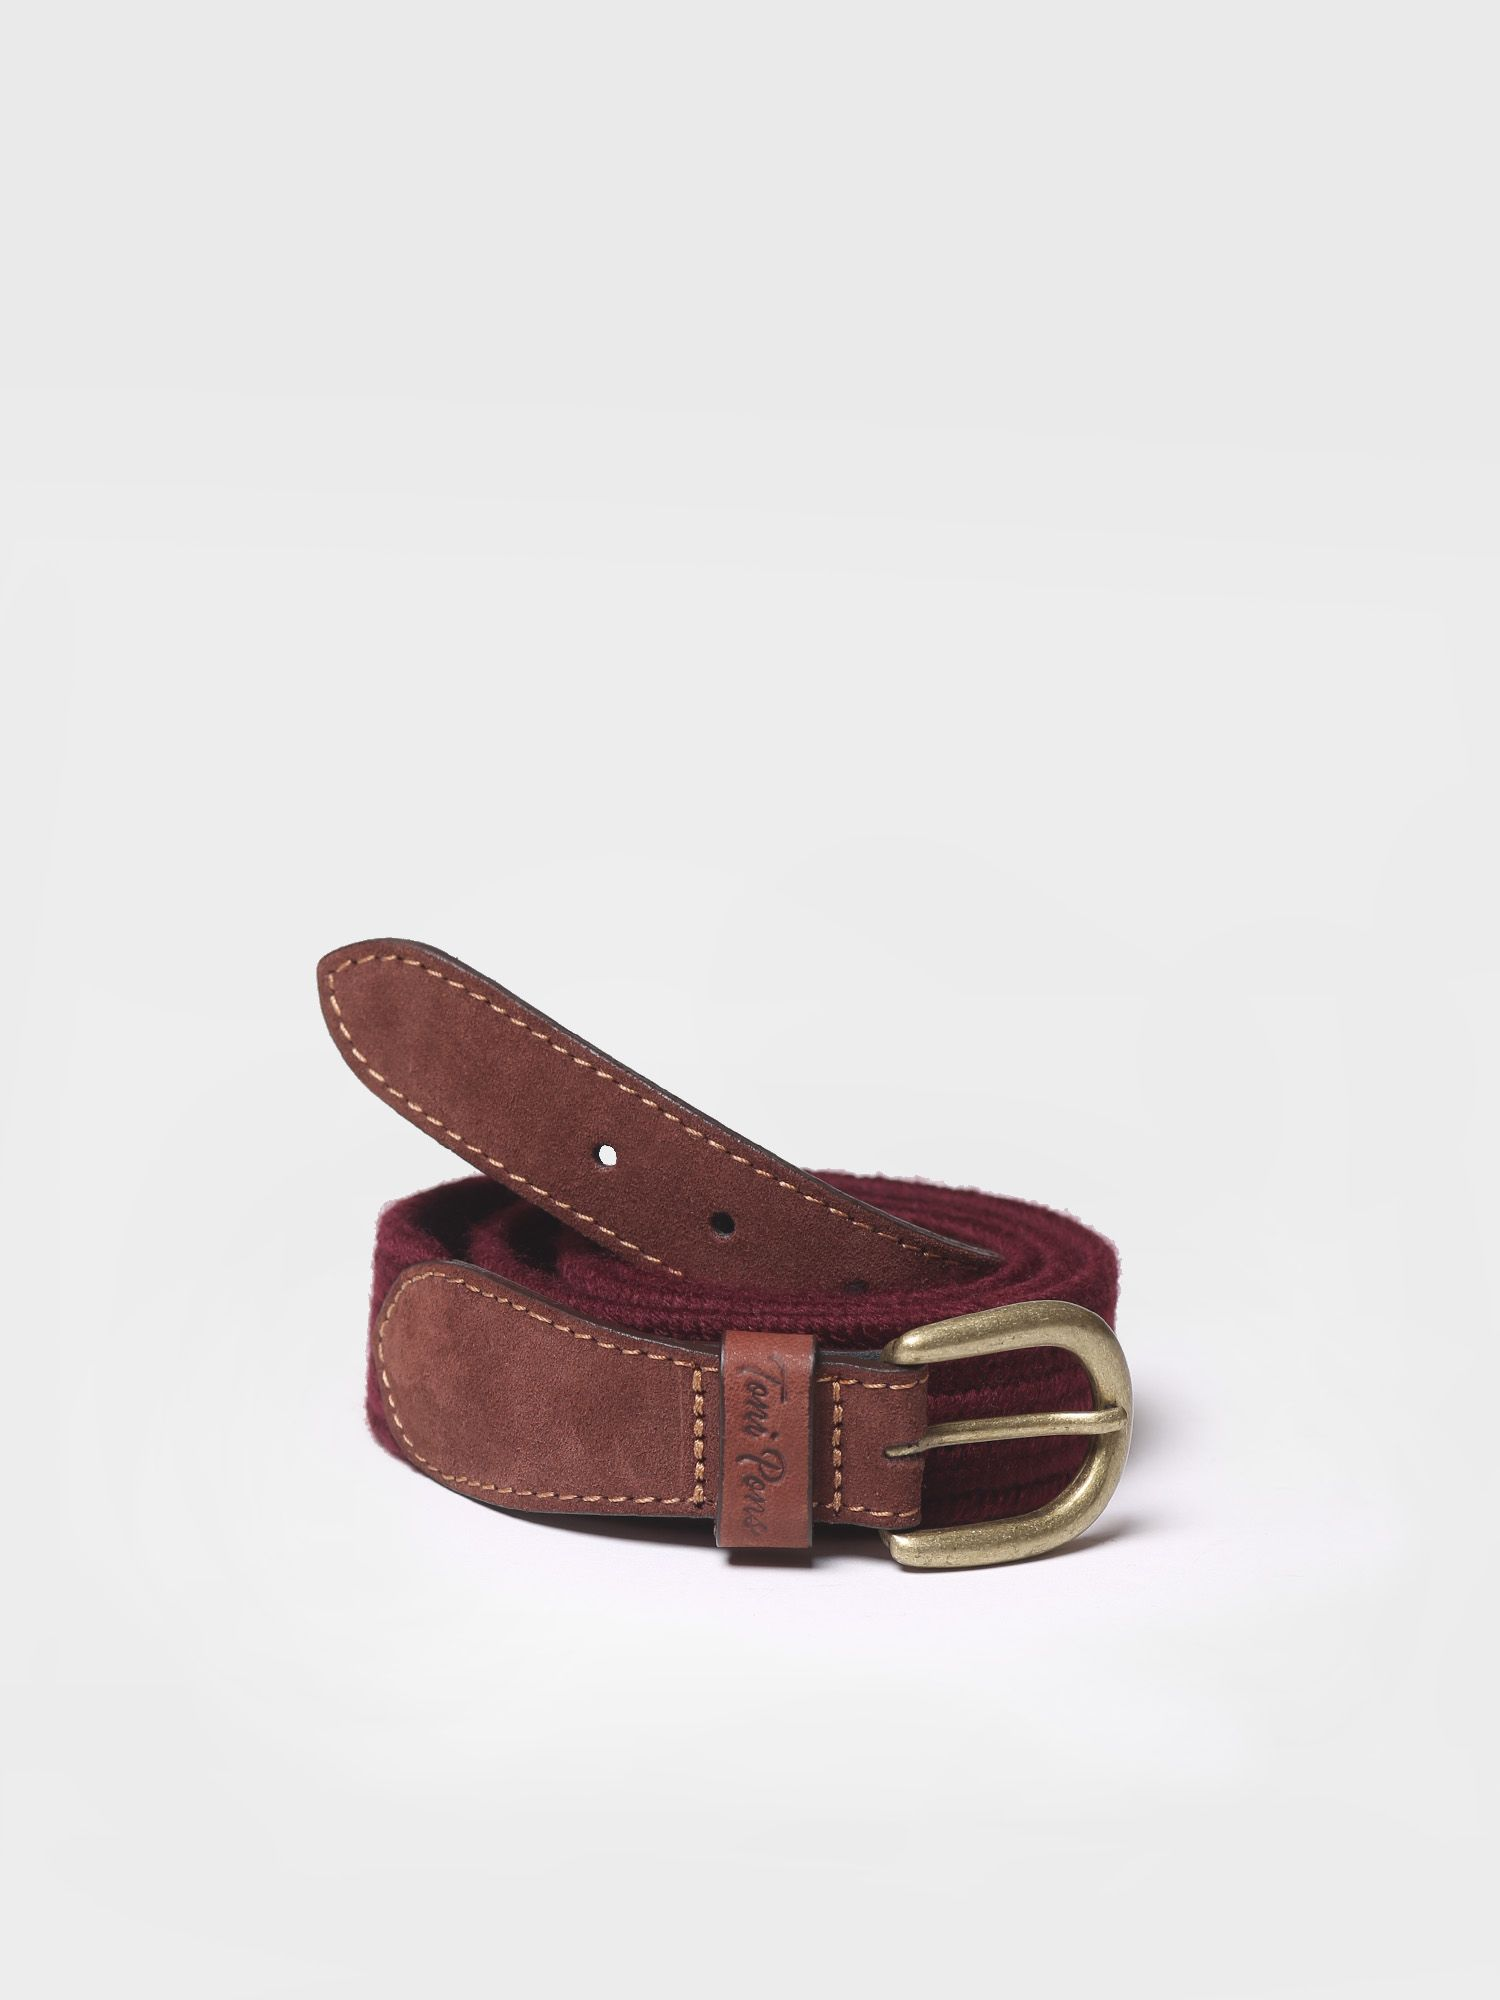 Belt in elastic fabric in burgundy shades - NALA